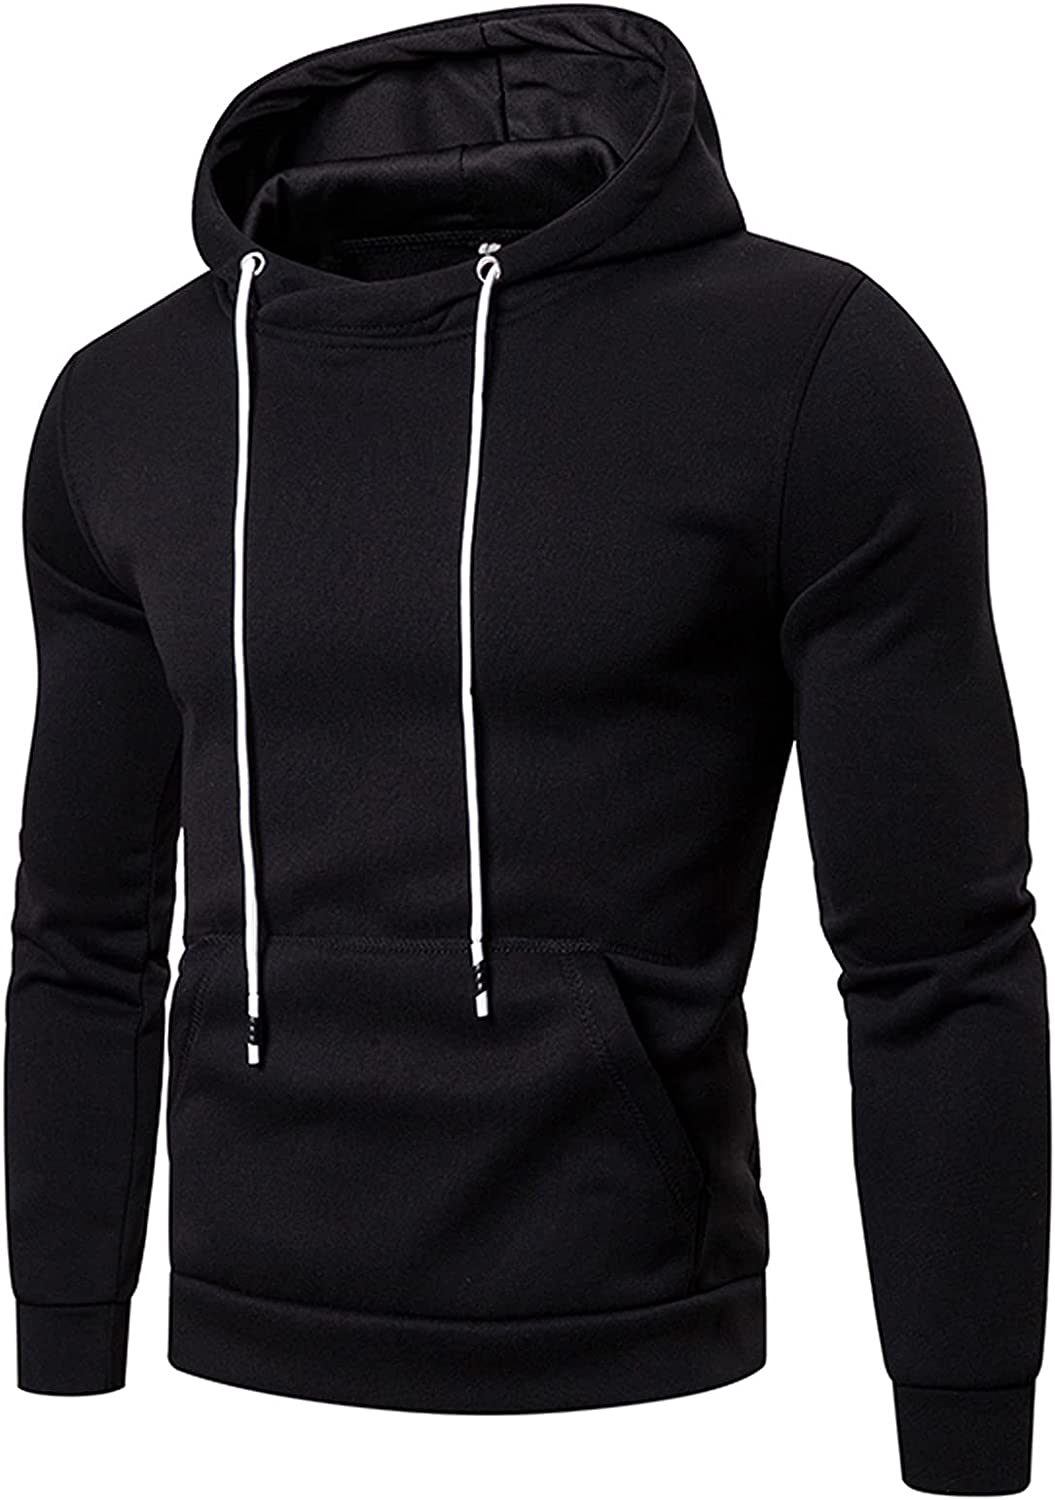 WUAI-Men Gym Workout Active Hoodie Sweatshirt Long Sleeve Drawstring Casual Lightweight Hooded Pullover with Pockets